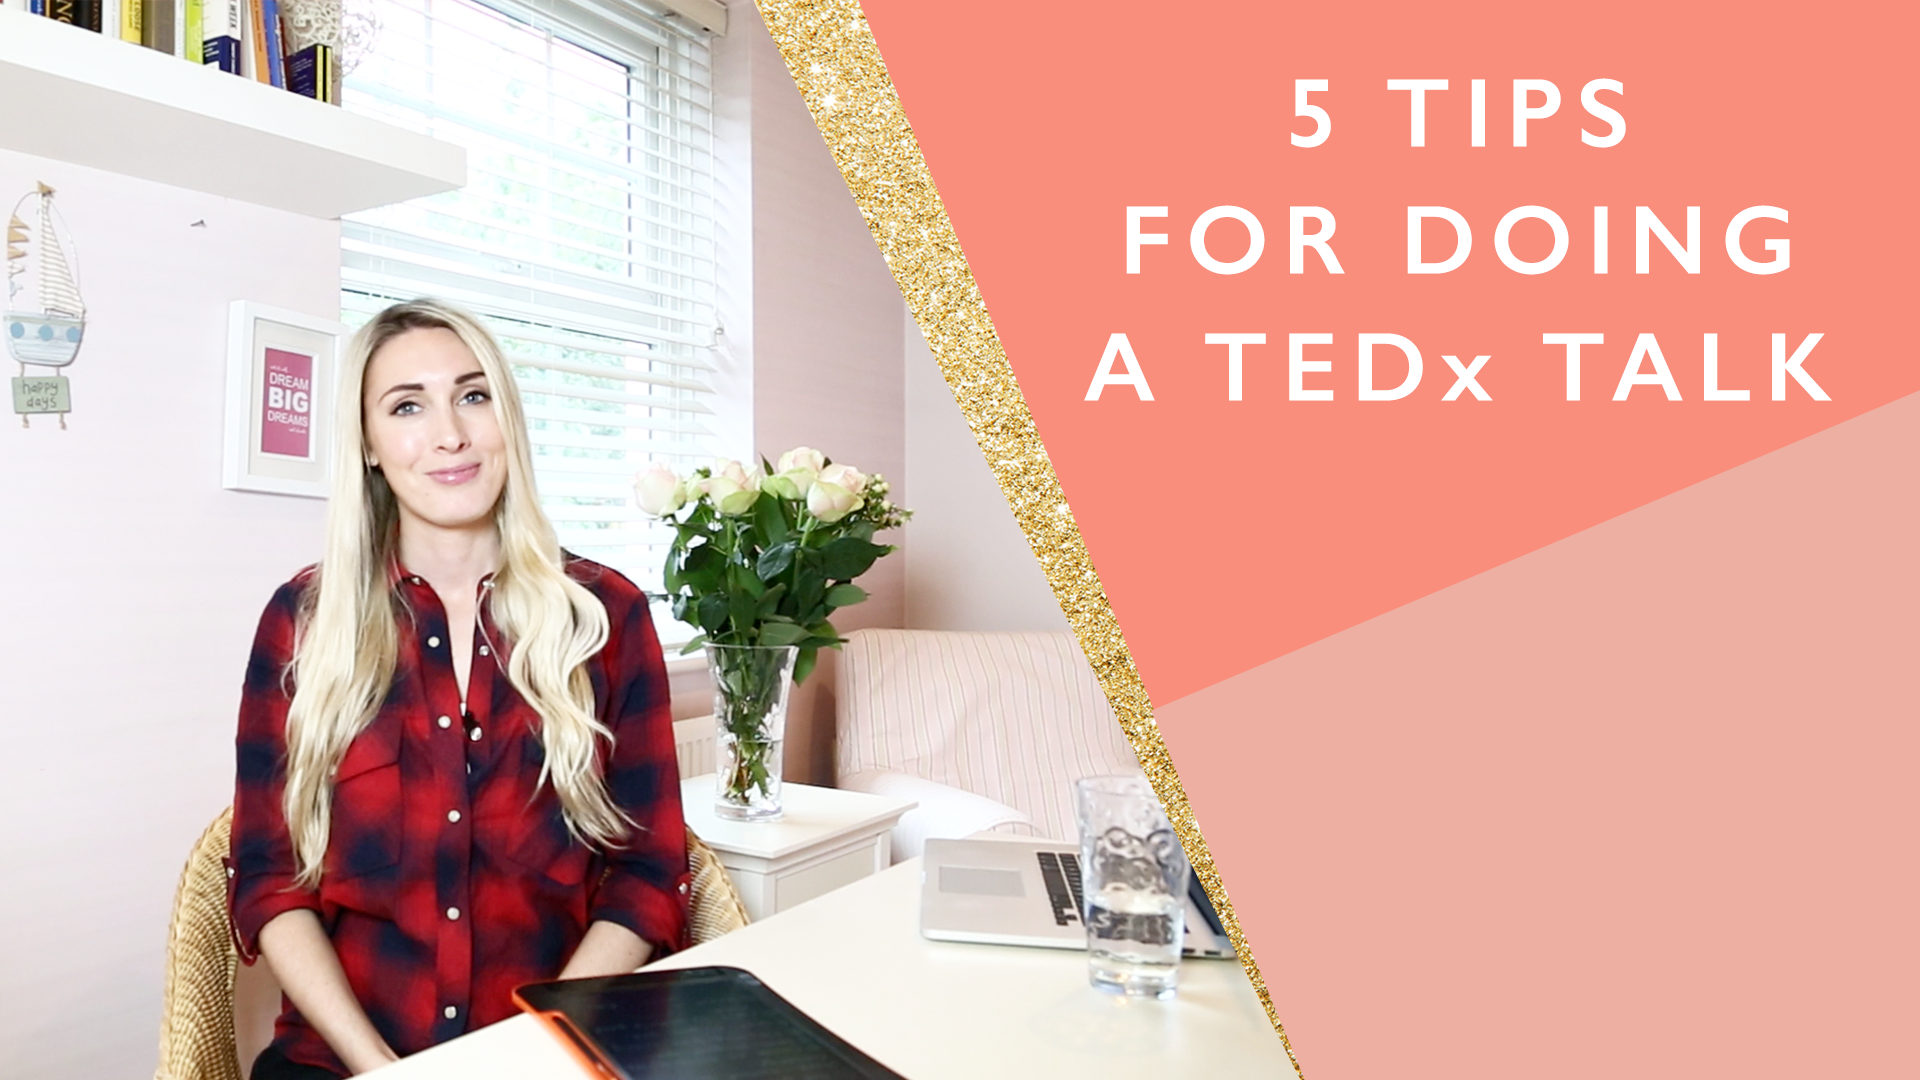 5 Tips For Doing a TEDx Talk